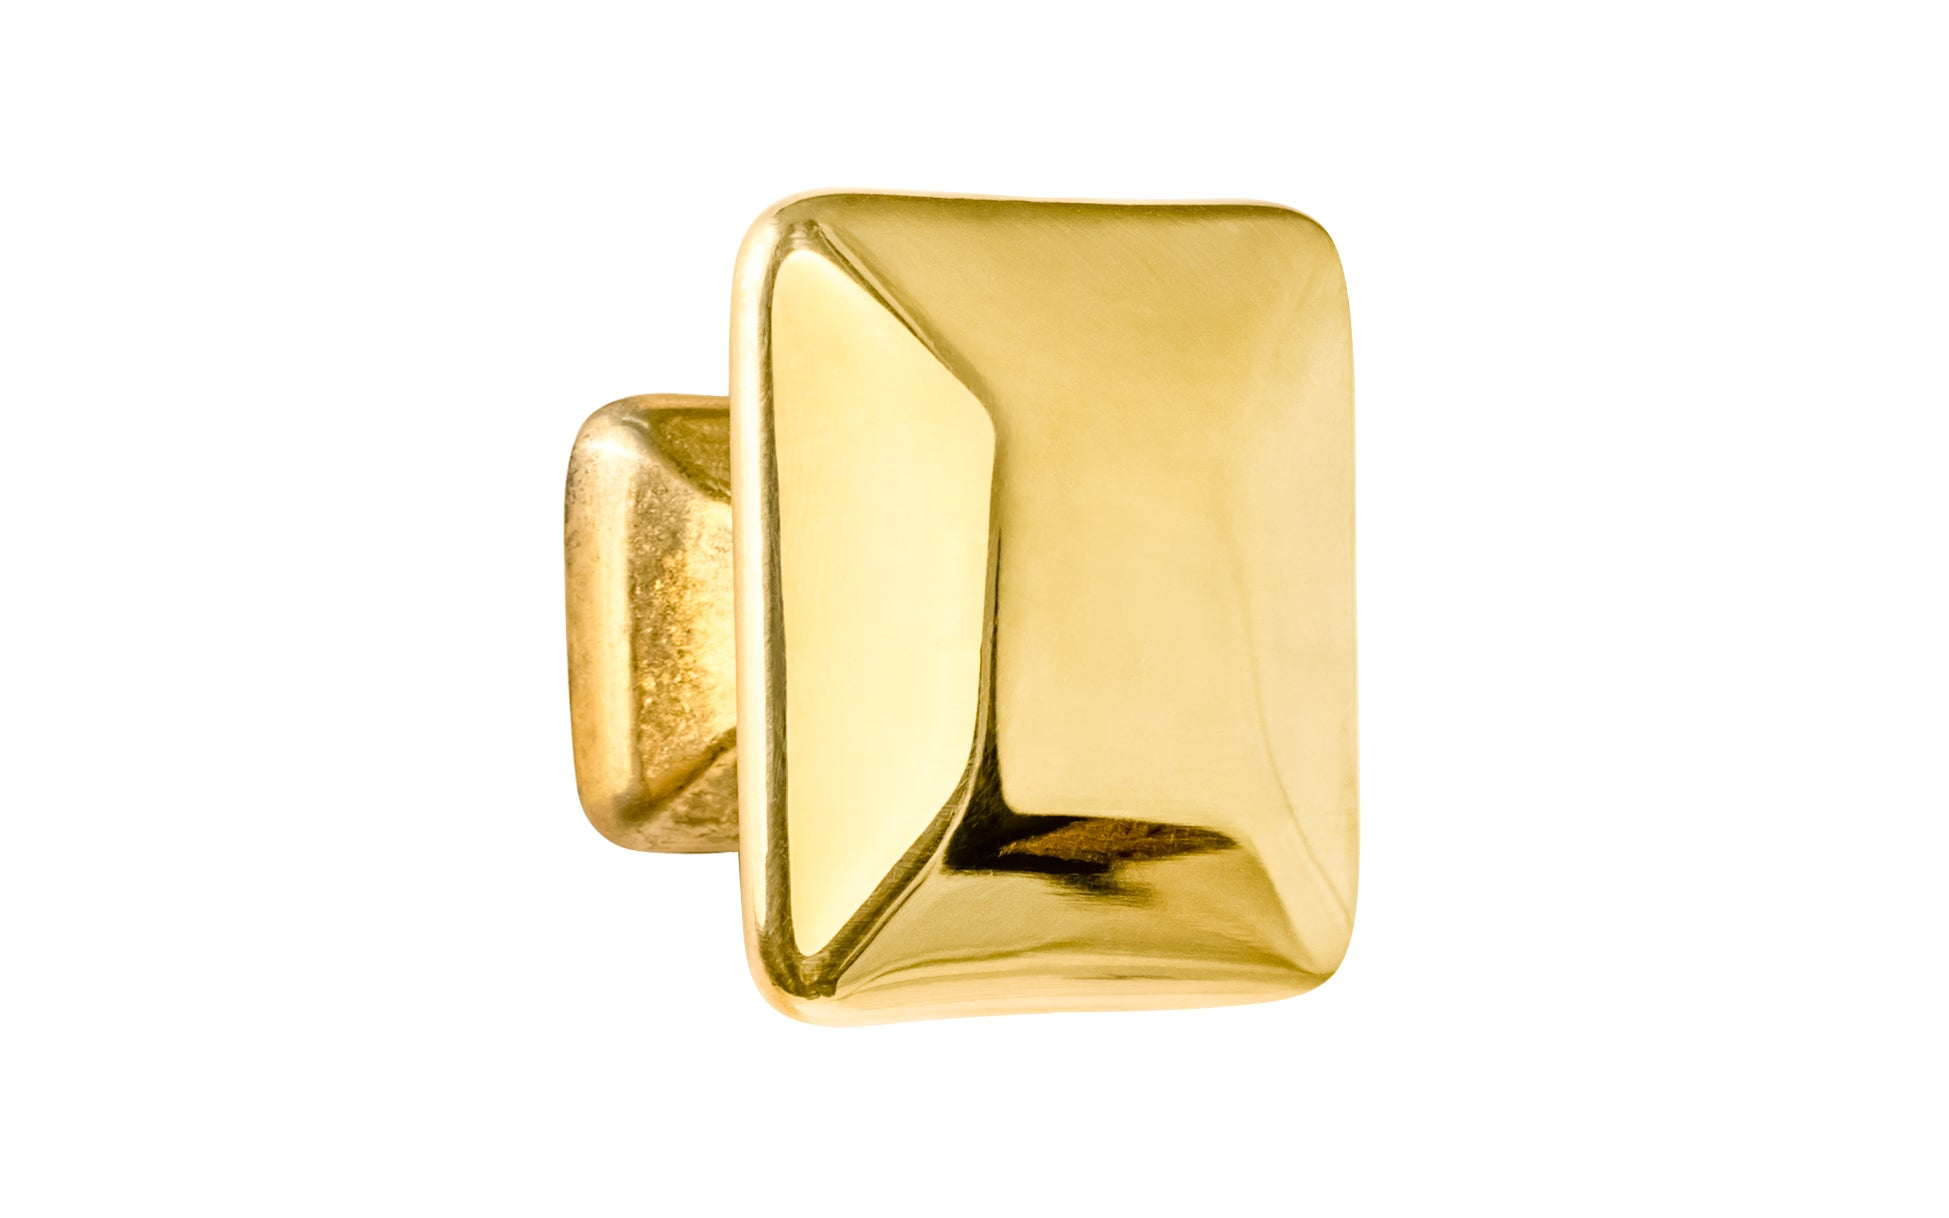 Solid Brass Square Knob ~ 1-1/4